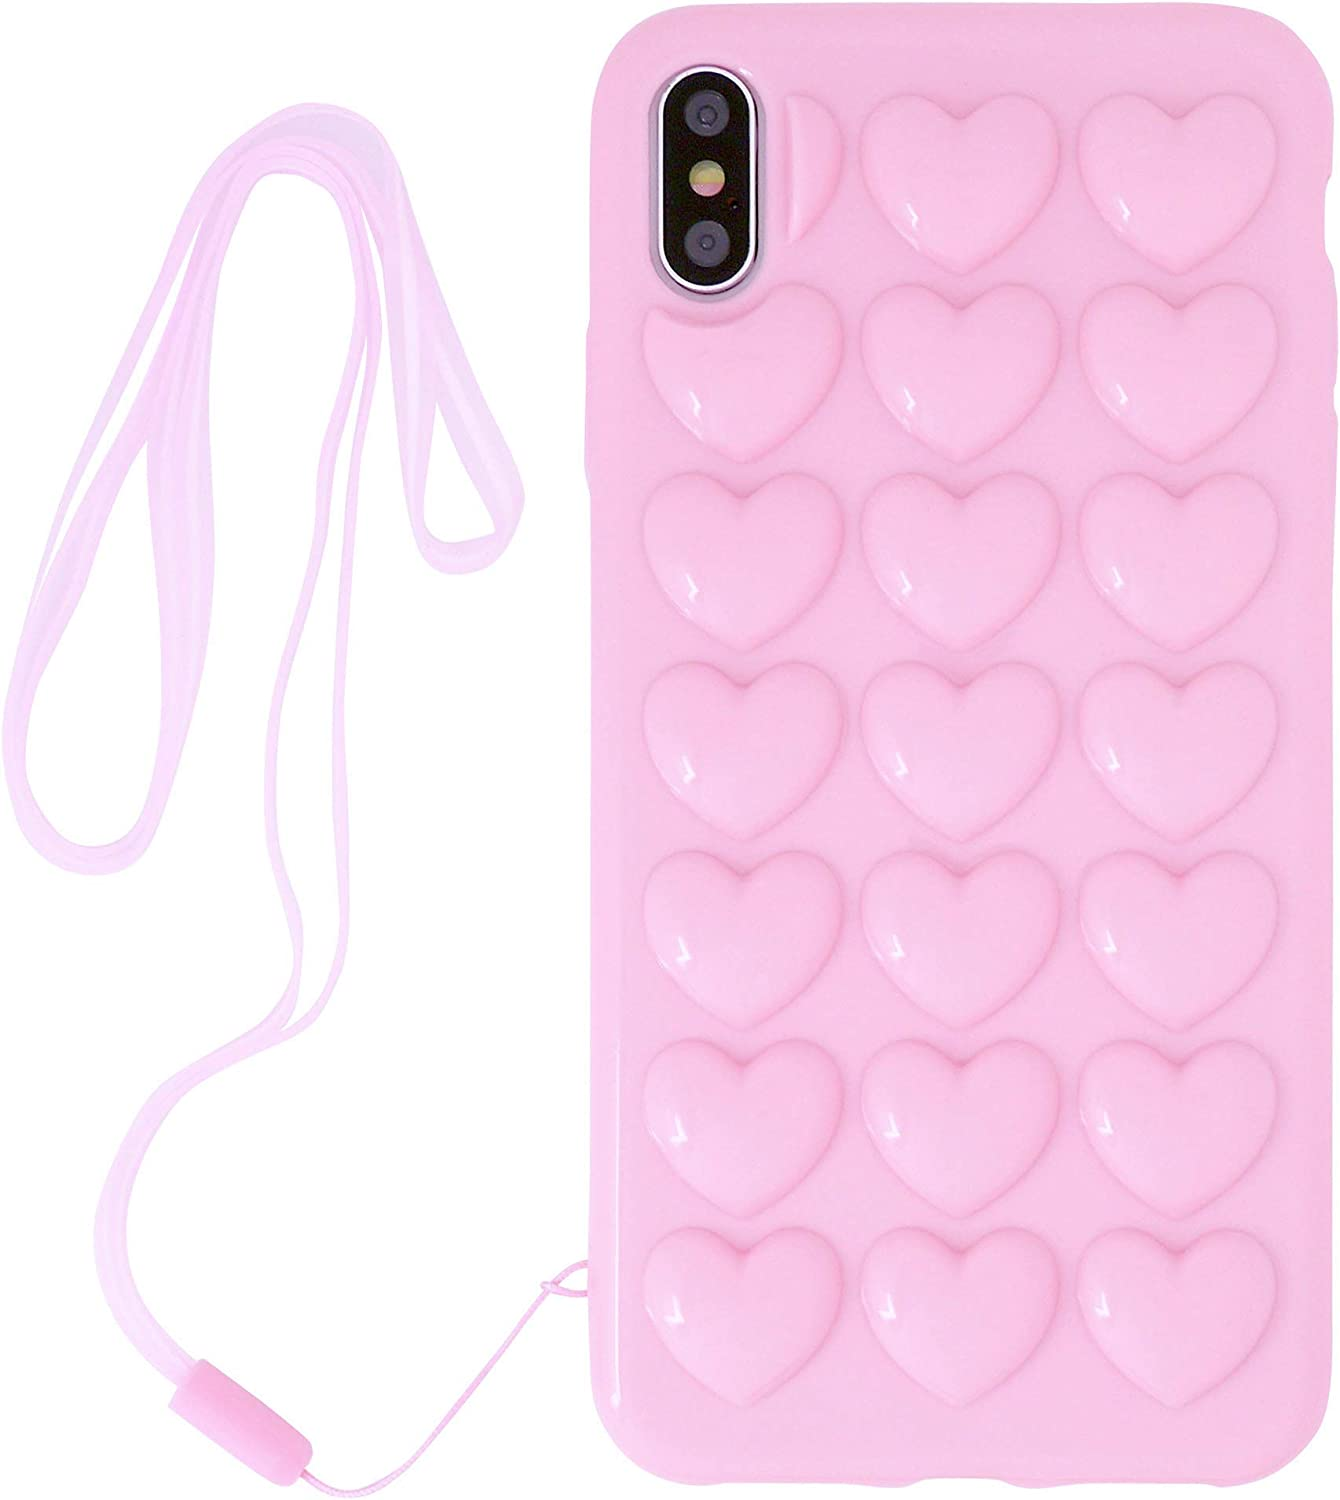 iPhone 6 Plus/iPhone 6s Plus Case for Women, DMaos 3D Pop Bubble Heart Kawaii Cover with Lanyard Wrist Strap, Cute Girly for iPhone 6+ 6s+ 5.5 inch - Pink